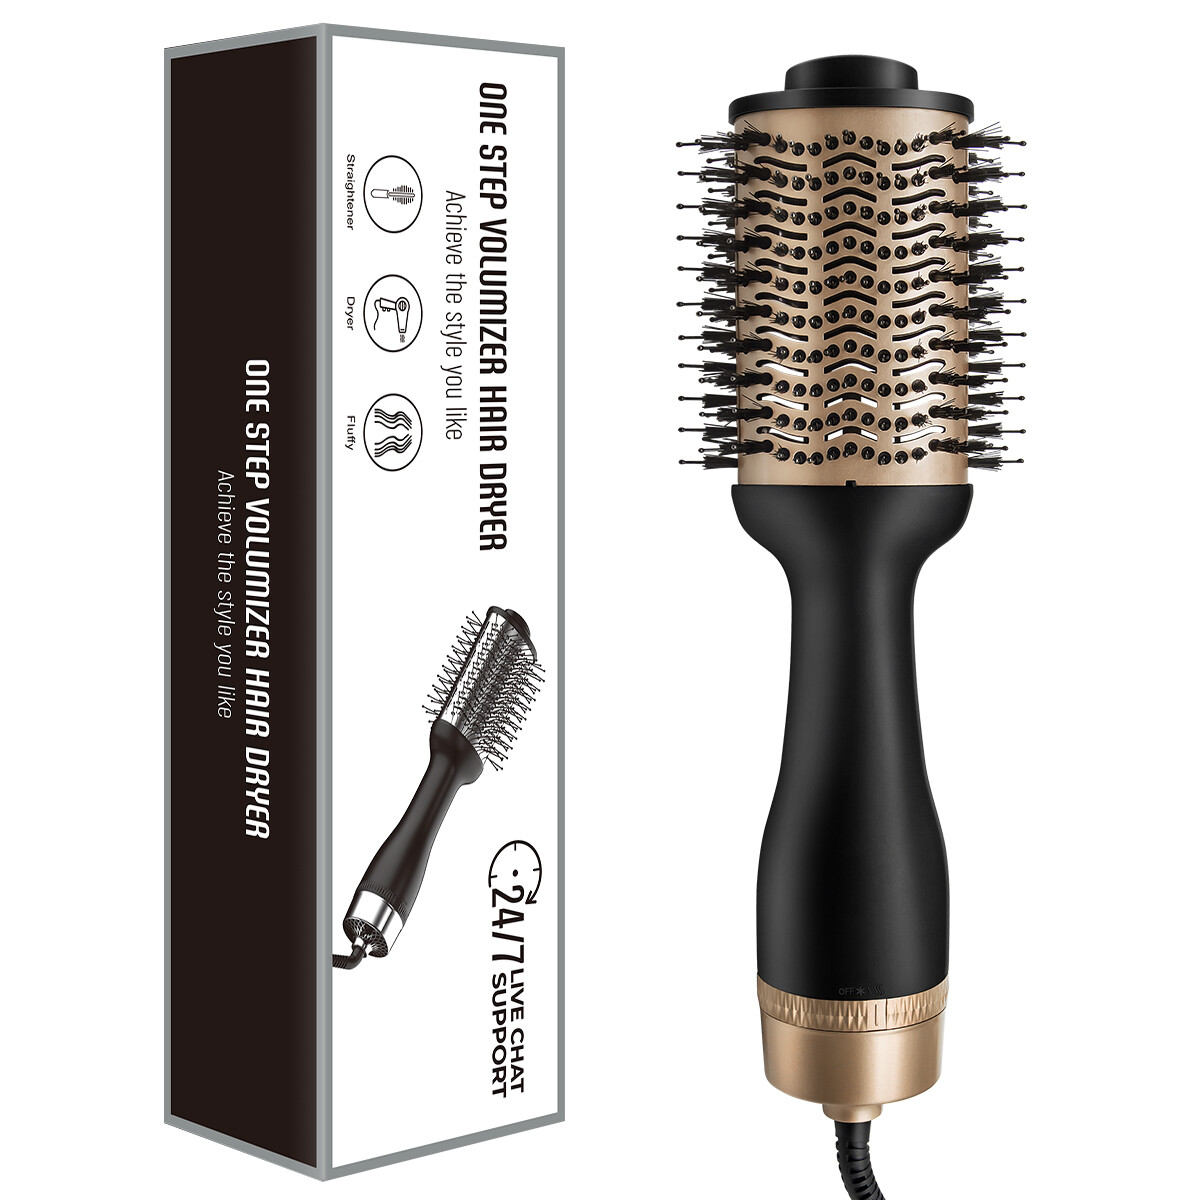 Professional Magic & Volumizer 3 in 1 Blow Dryer and Curling Comb